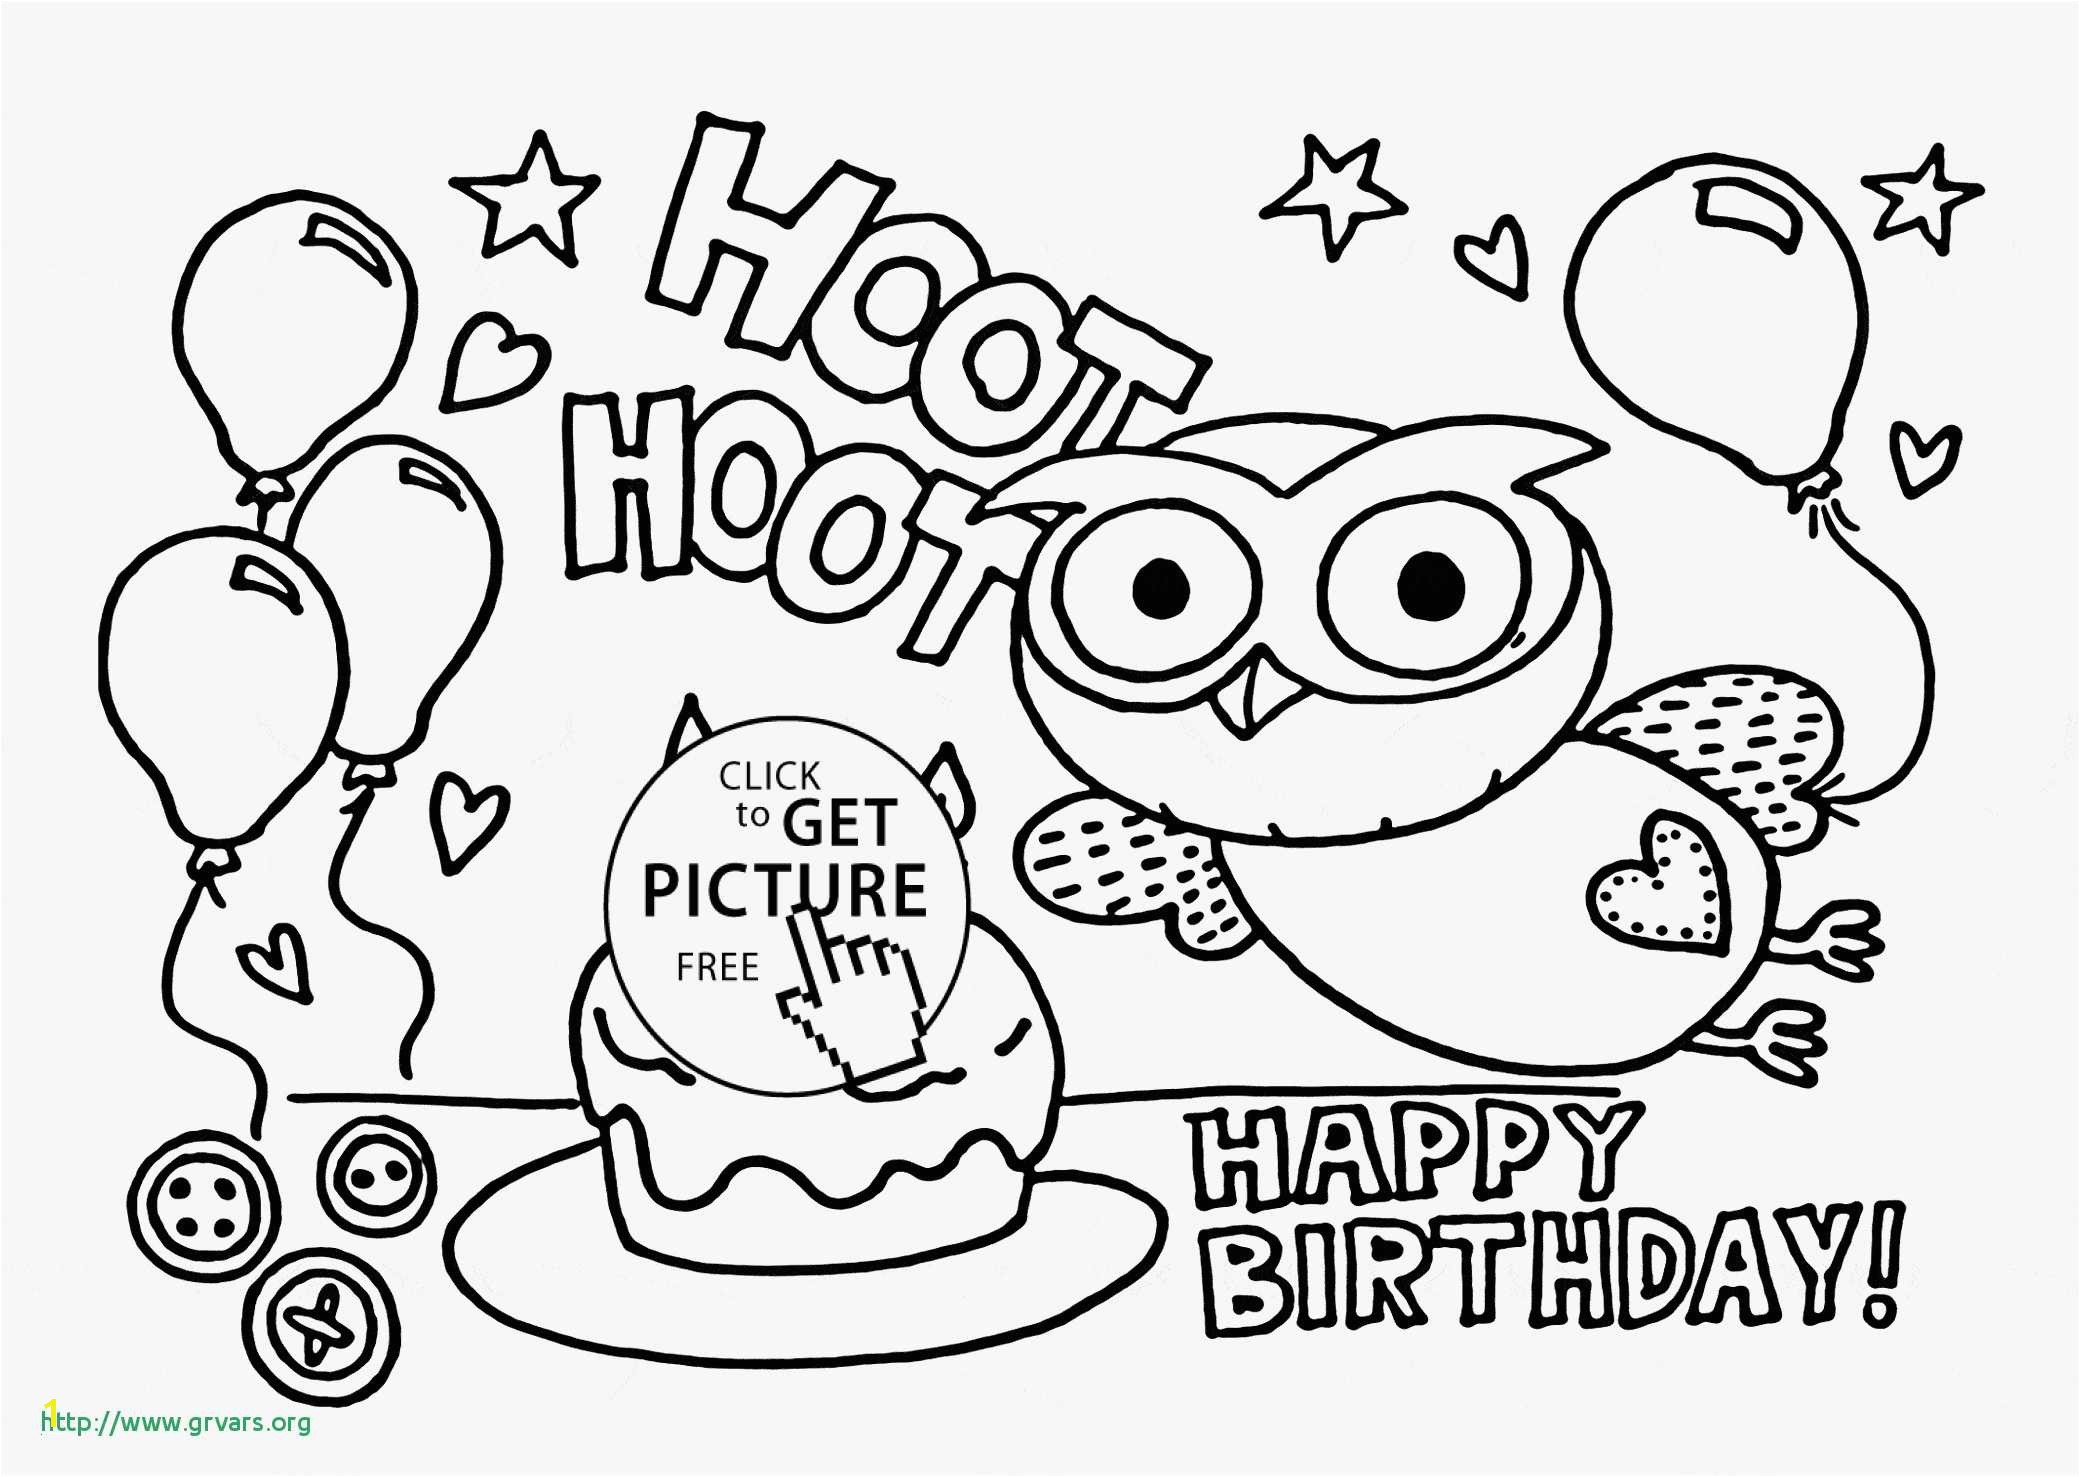 Birthdays Cards Unique Printable Funny Birthday Cards Best I Pinimg originals 0e 0d 49